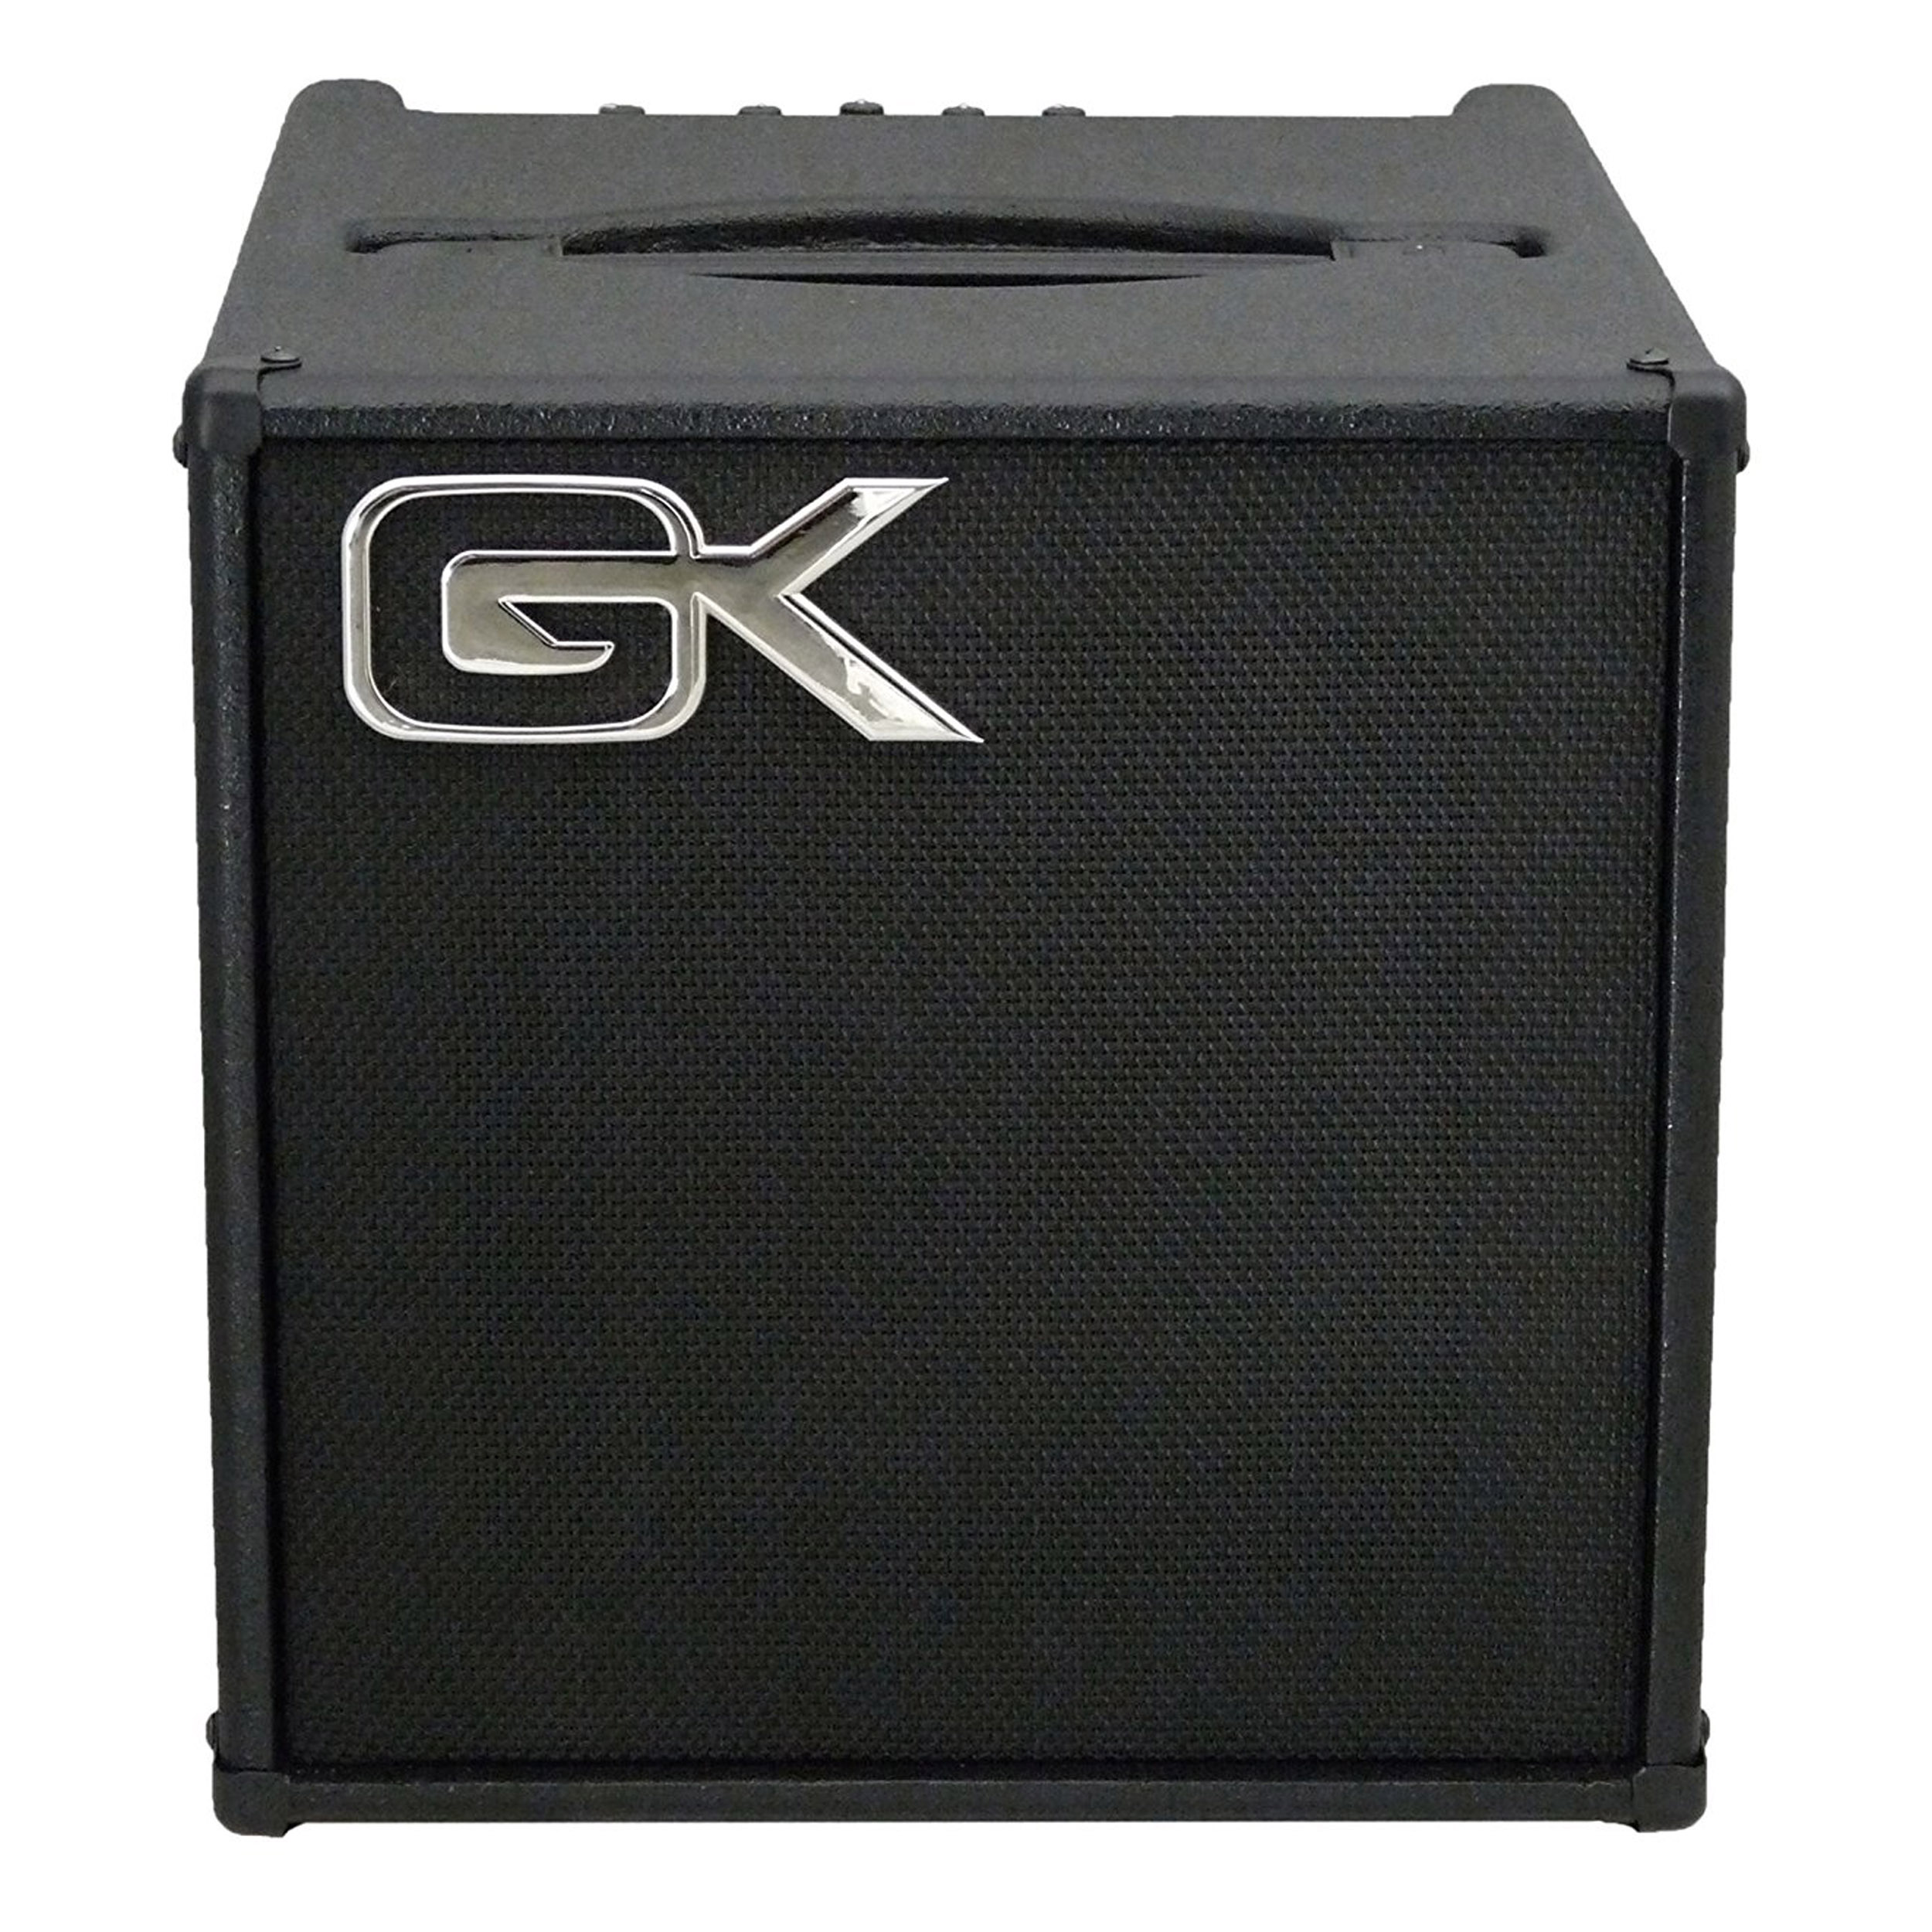 Gallien-Krueger MB110 1x10 100W Ultra Light Bass Guitar Combo by Gallien Krueger